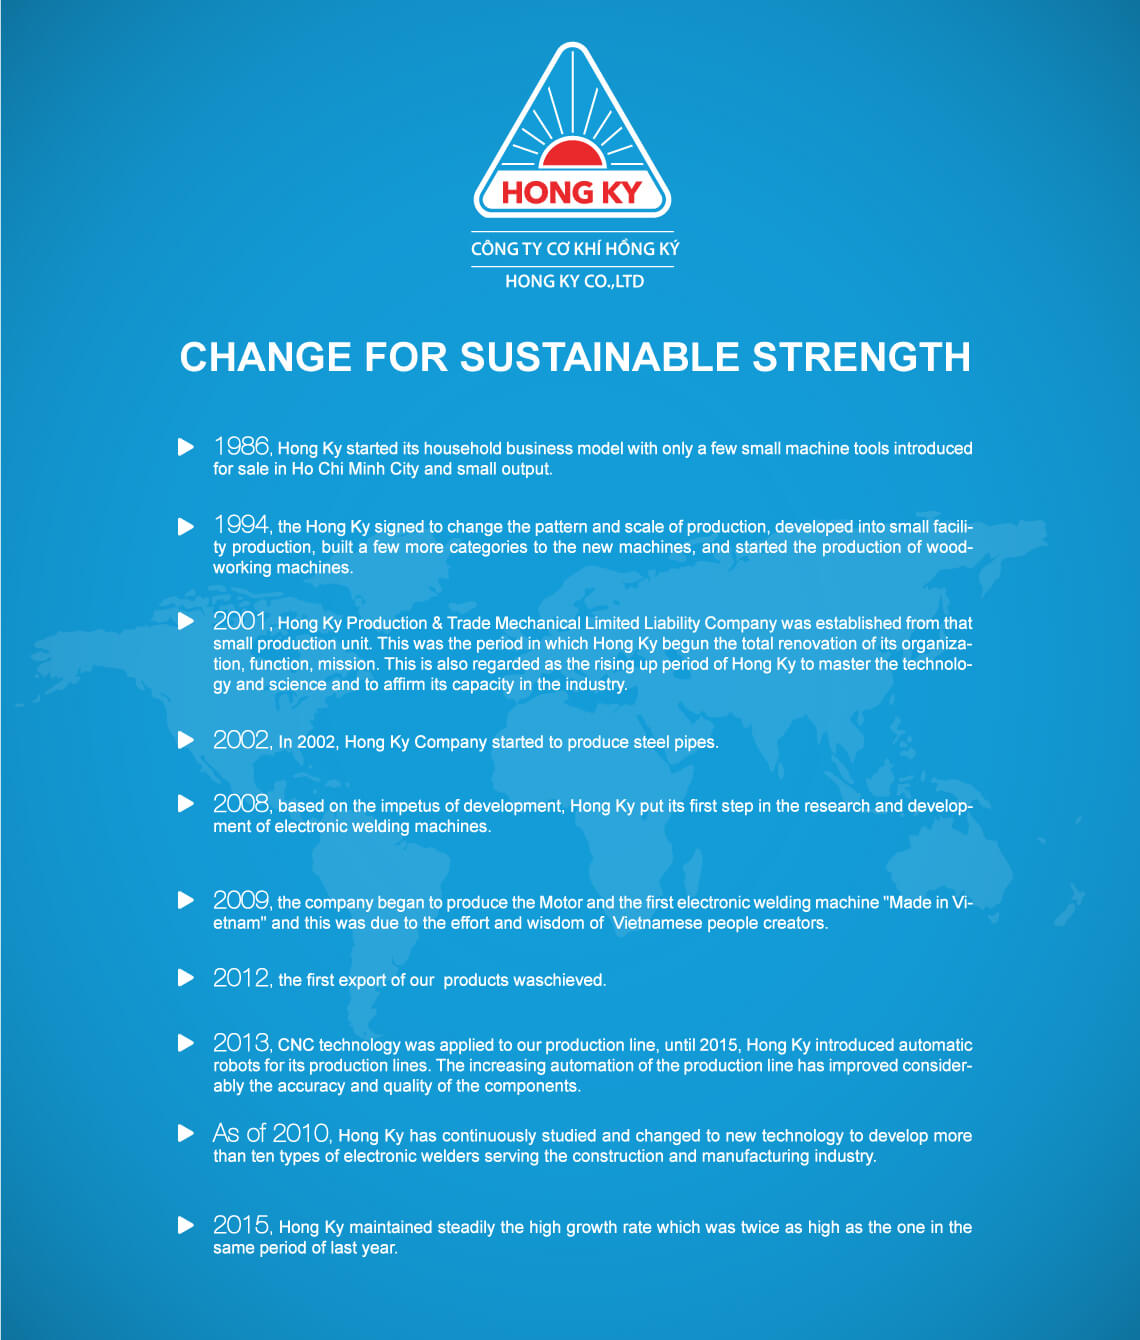 Change for sustainable strength